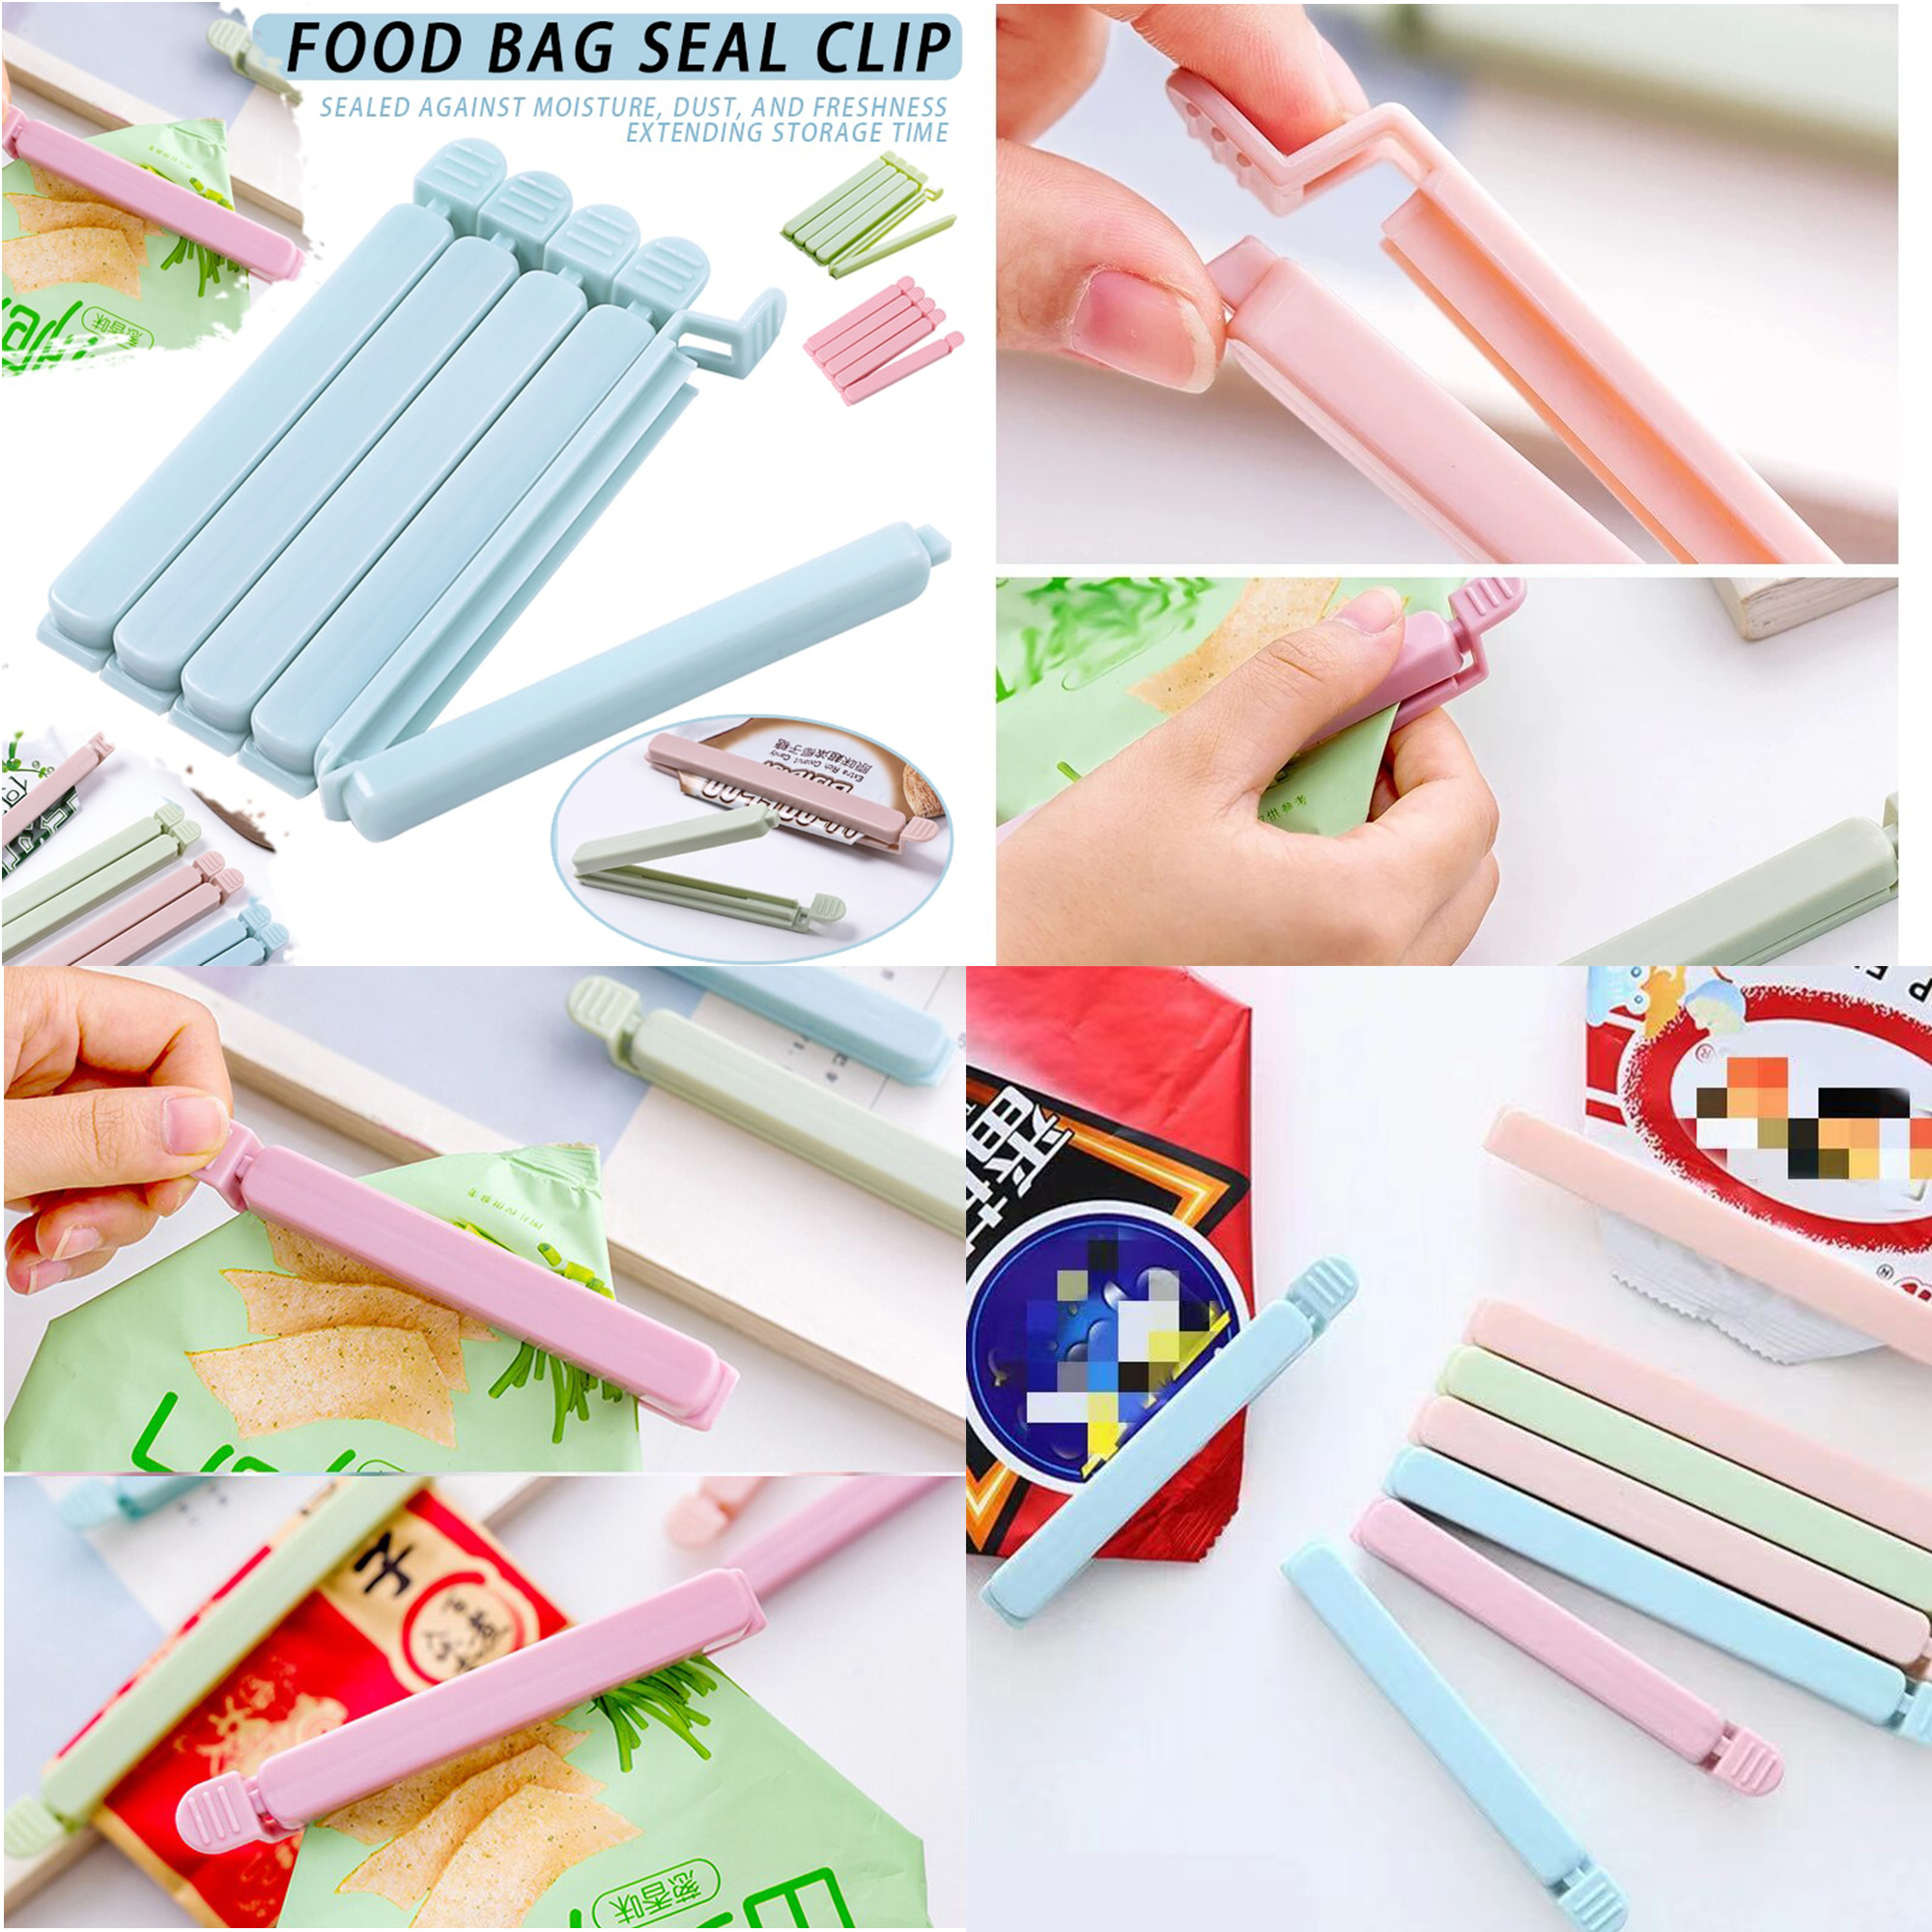 Pack of 5 Food Sealer Snack Bag Sealing Clamp Plastic Sealer Tool For Kitchen Household Seal Close Clip Portable Colorful Eco-Friendly Fresh Food Sealing Pliers Household Snack Bag Clip Household bag seal clip For Eating Items Freezer Fridge Organizer